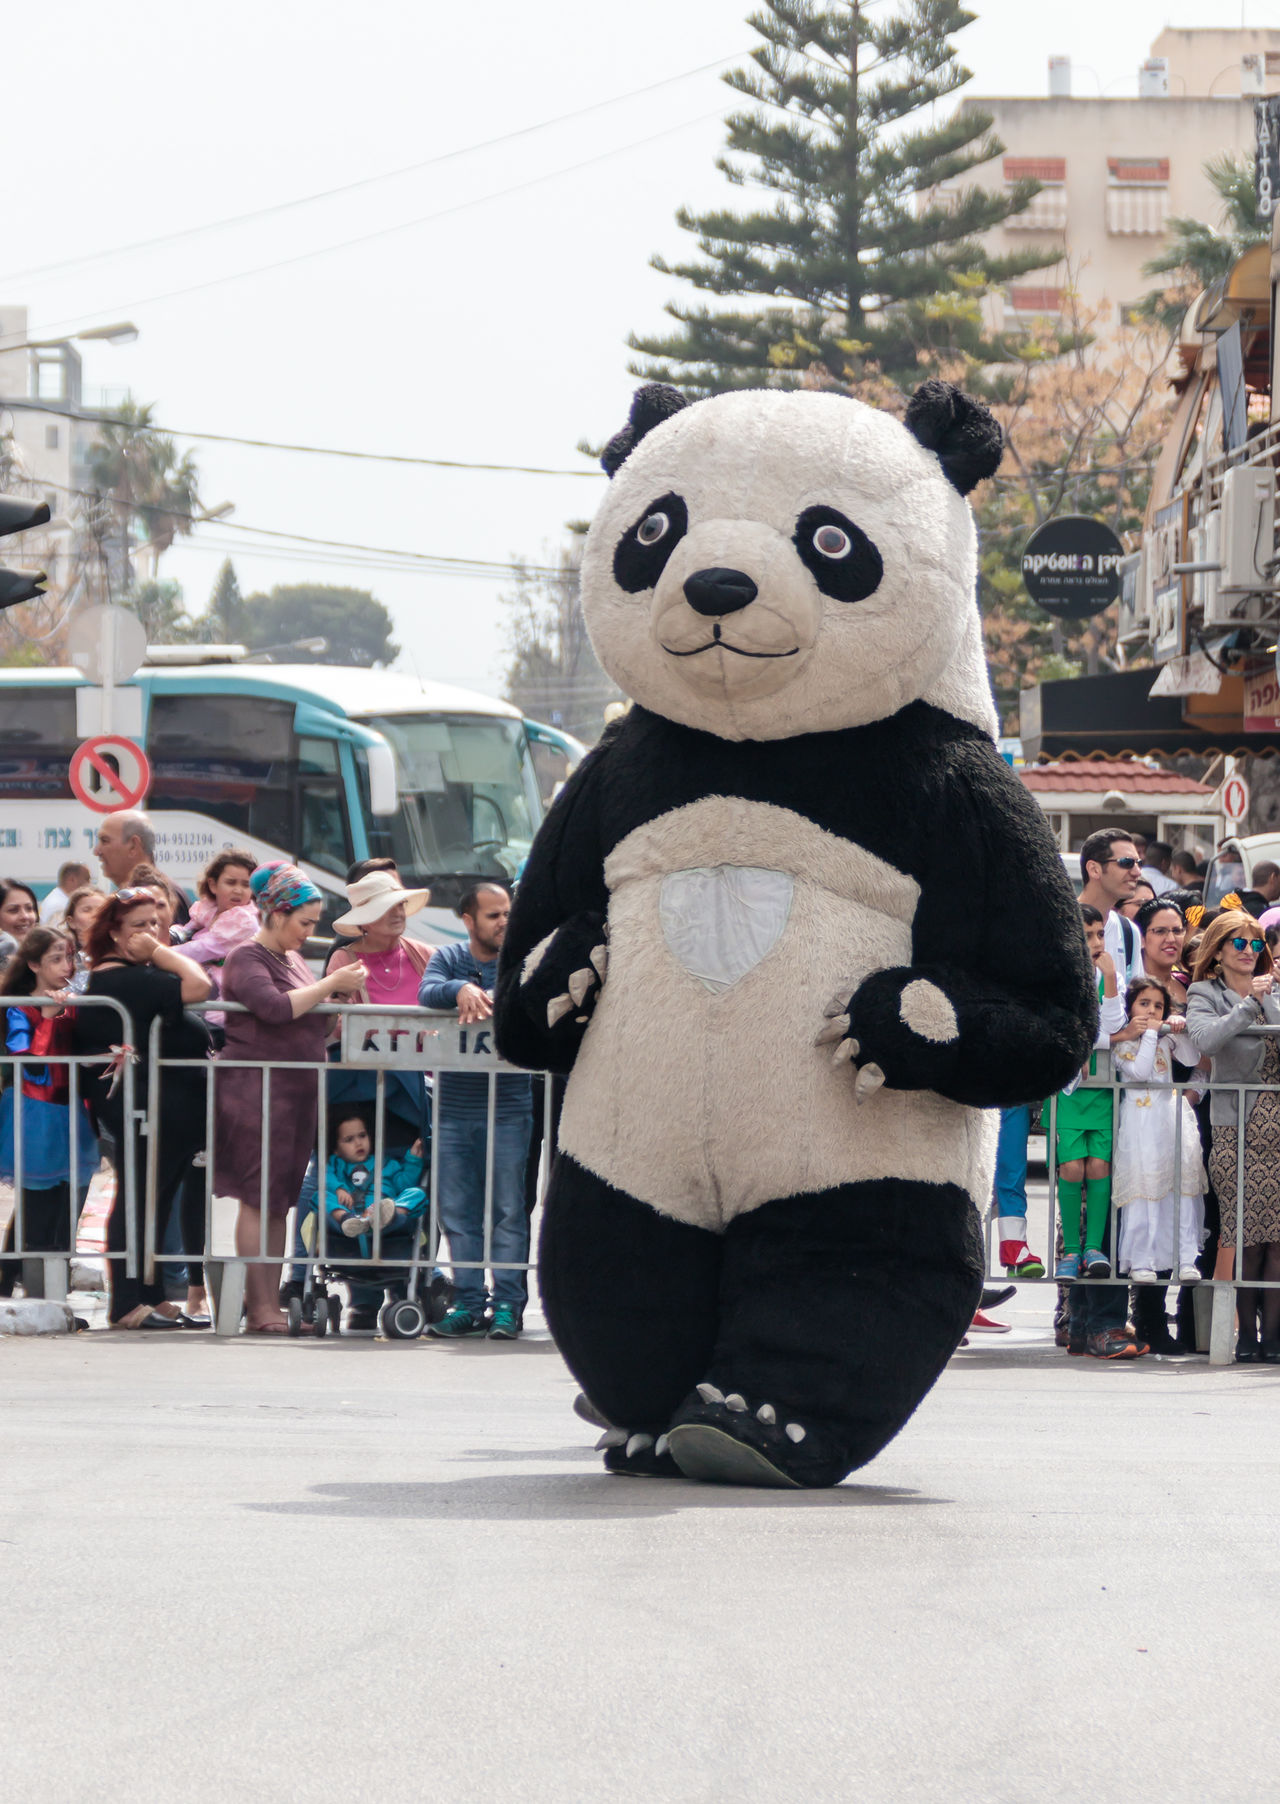 "Nahariyya, Israel, March 10, 2017 : Participant in the traditional annual carnival parade ""Adloyada"" dressed in the big suit of Panda goes near the viewers in Nahariyya, Israel Adloyada Adult Beauty Carnival Celebration Colorful Costume Culture Day Decoration Dressed Entertainment Festival Fun Happy Israel Masquerade Nahariyya Outdoors Parade Party People Style Traditional Travel"